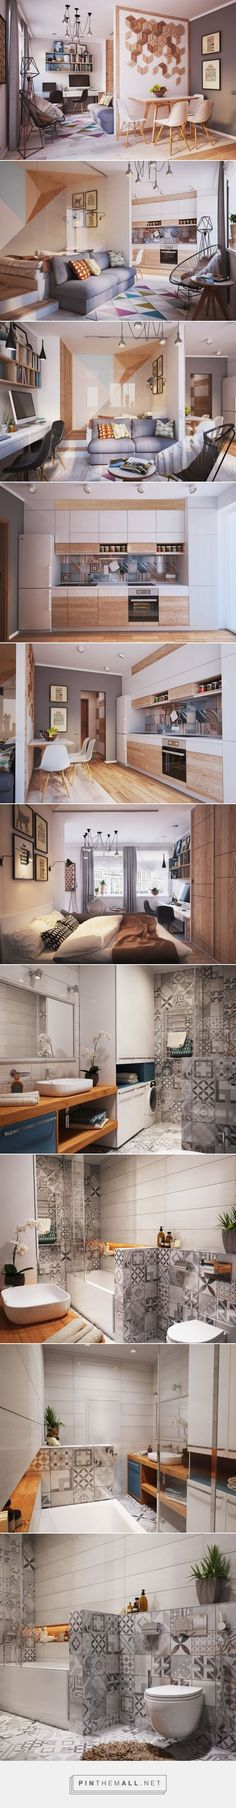 Living Small With Style: 2 Beautiful Small Apartment Plans Under 500 Square Feet (50 Square Meters) - created via http://pinthemall.net